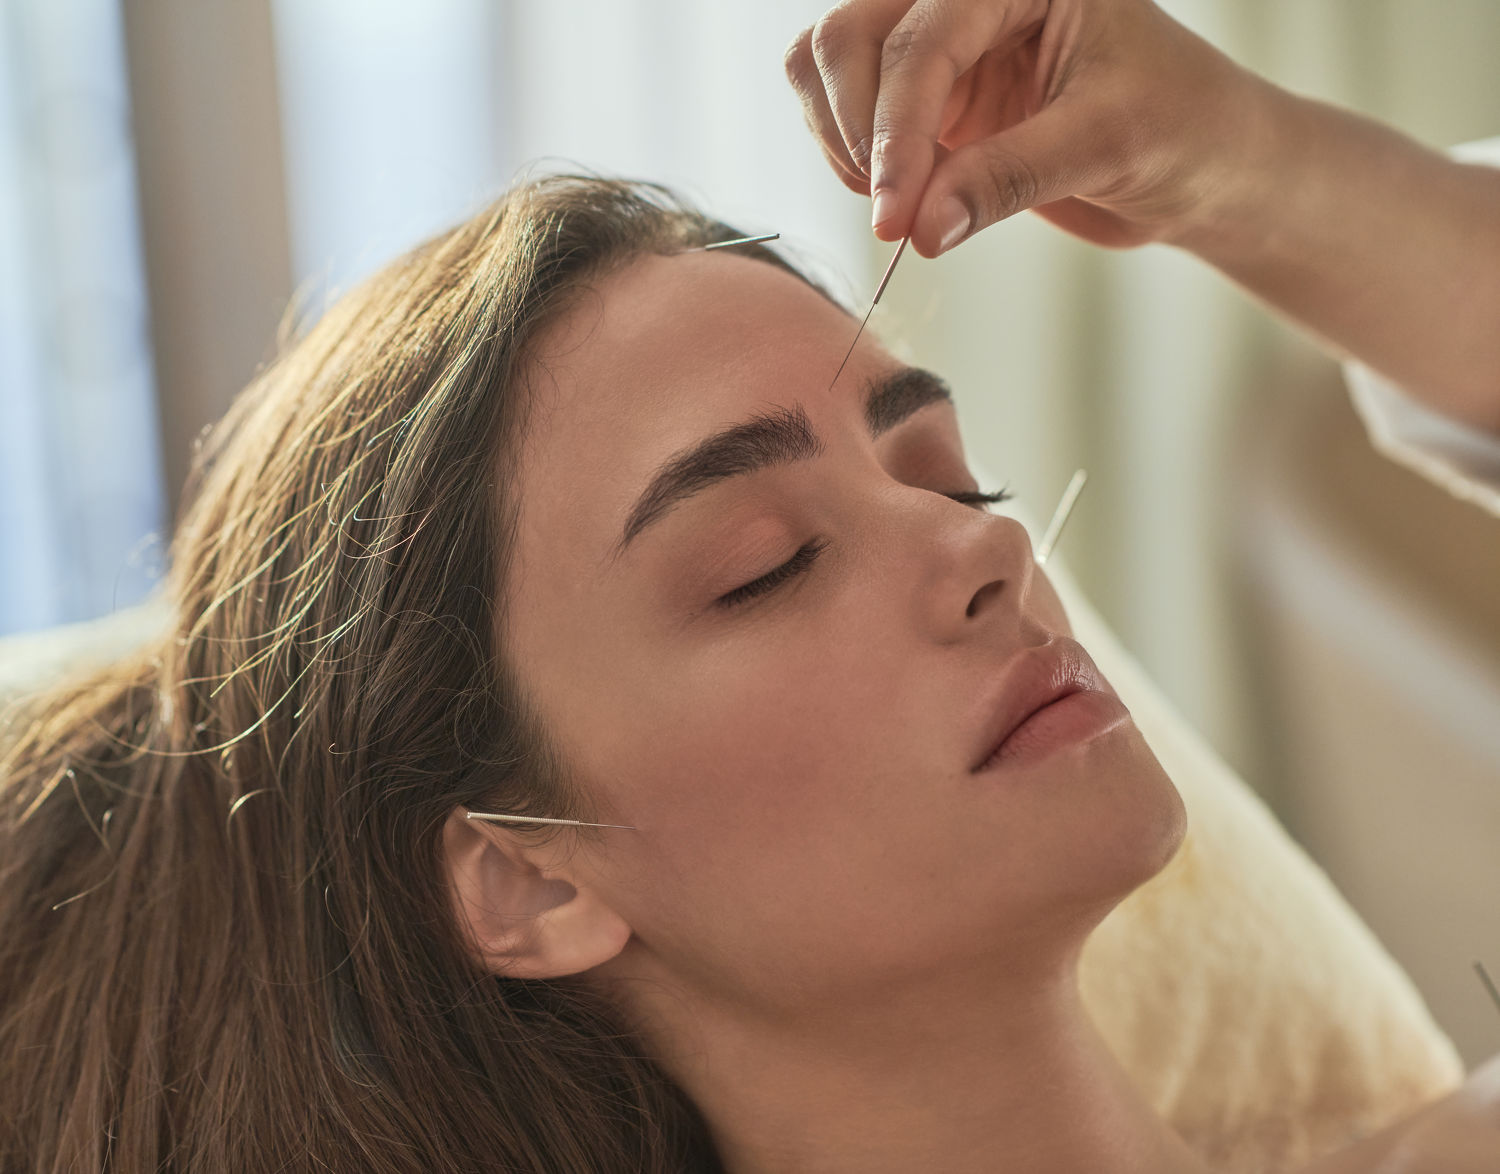 Zulal Serenity Wellness Centre Treatment Room Accupuncture Lifestyle - THE EDGE SINGAPORE